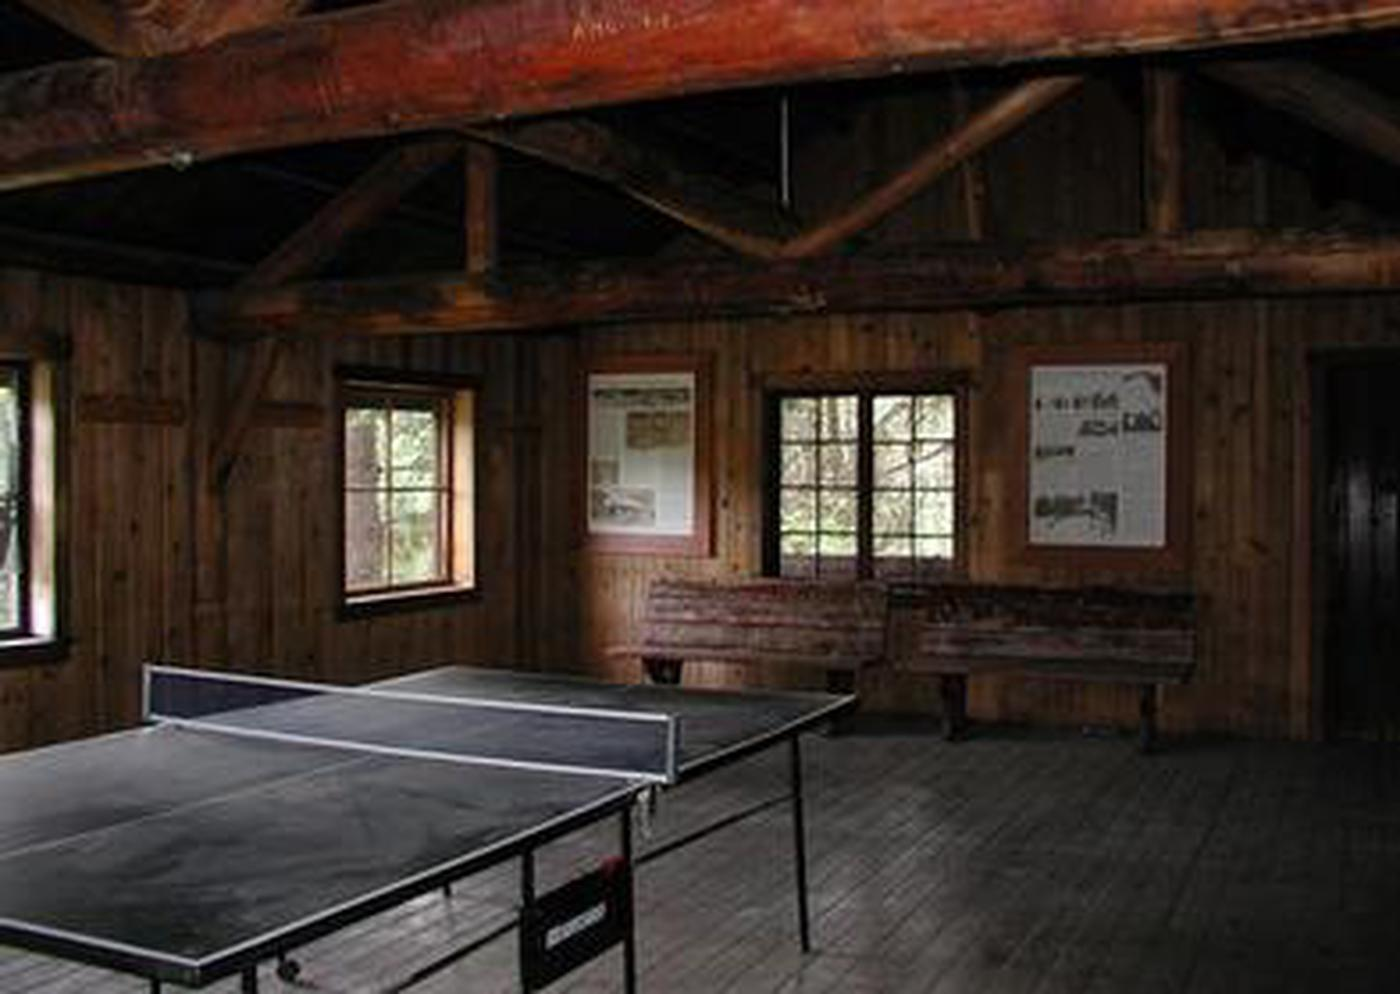 Ping-pong table in dimly lit large room with log rafters and benches.Ping-Pong table in American Ridge Lodge